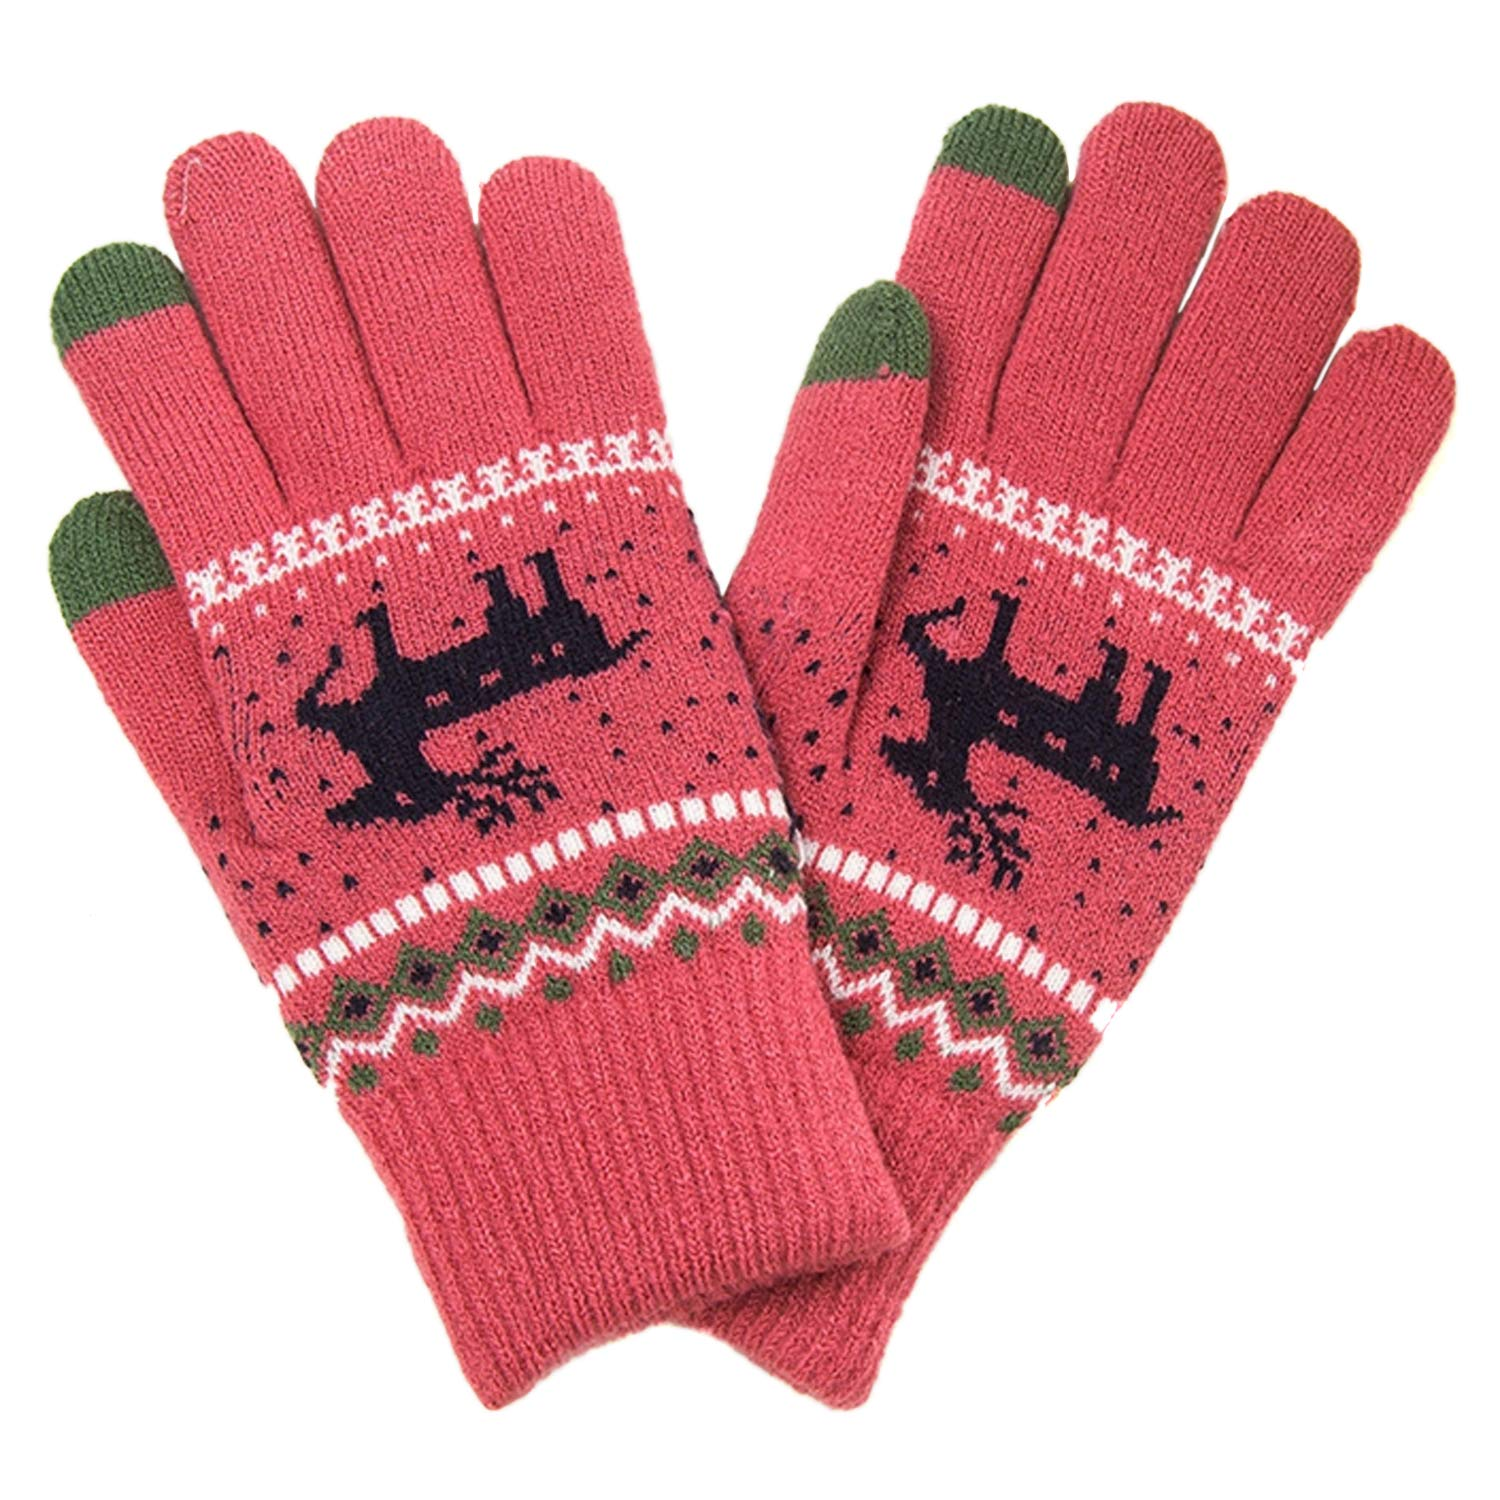 Pink TouchScreen Gloves for Women - Winter Texting Gloves with Touch Screen